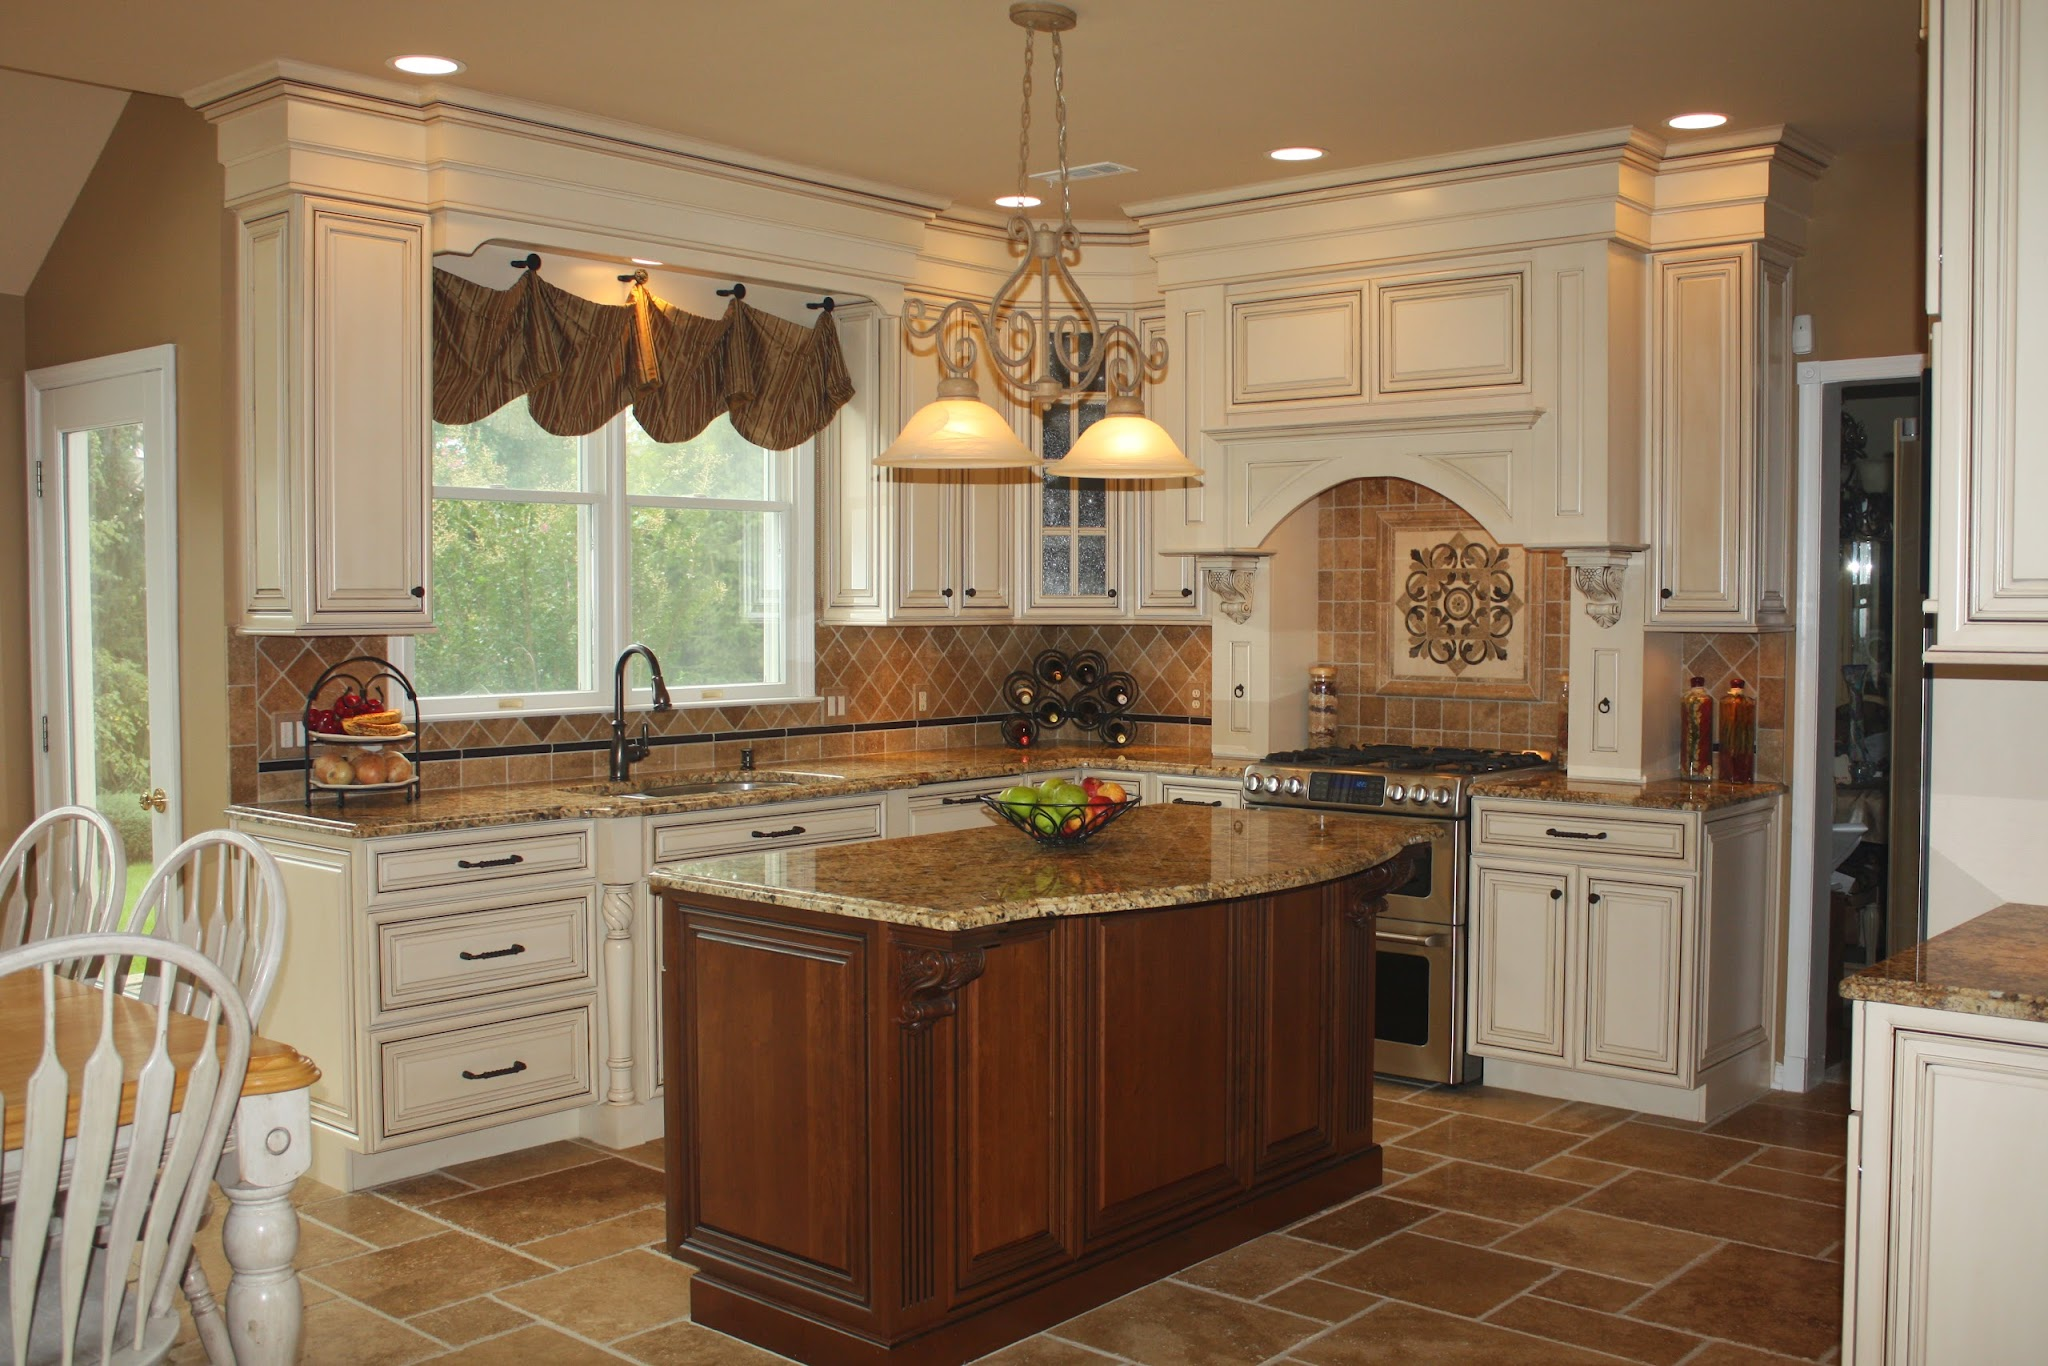 Houzz kitchen dreams house furniture for Kitchen remodel pictures